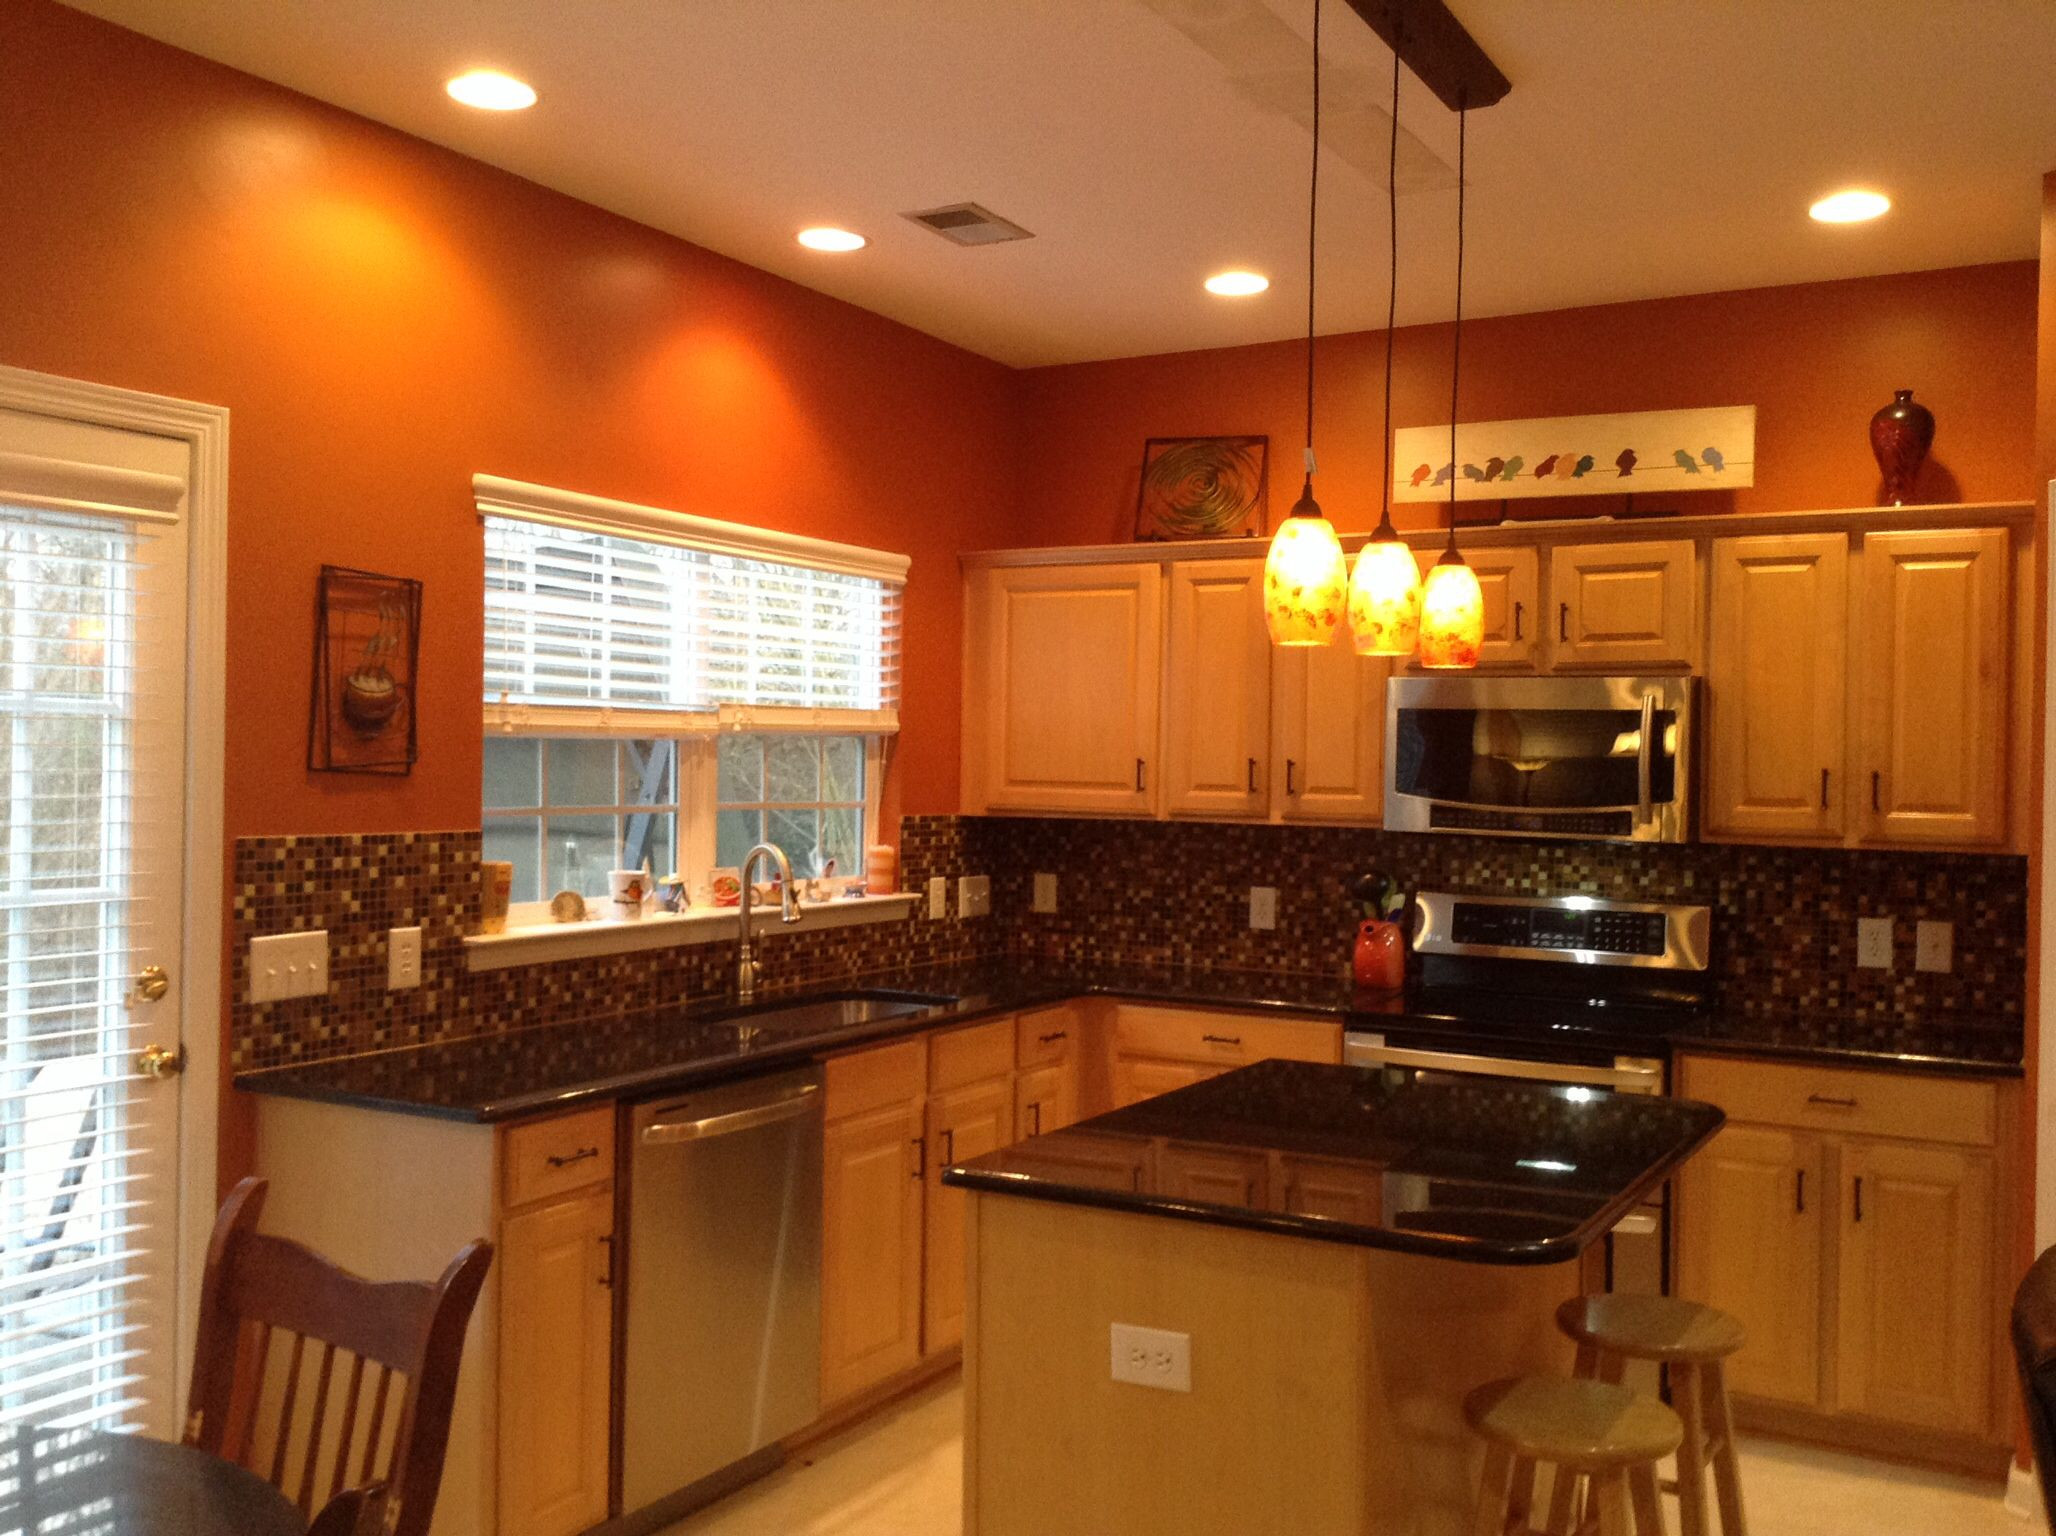 Best ideas about Burnt Orange Kitchen Decor . Save or Pin Burnt orange kitchen with new lighting Now.